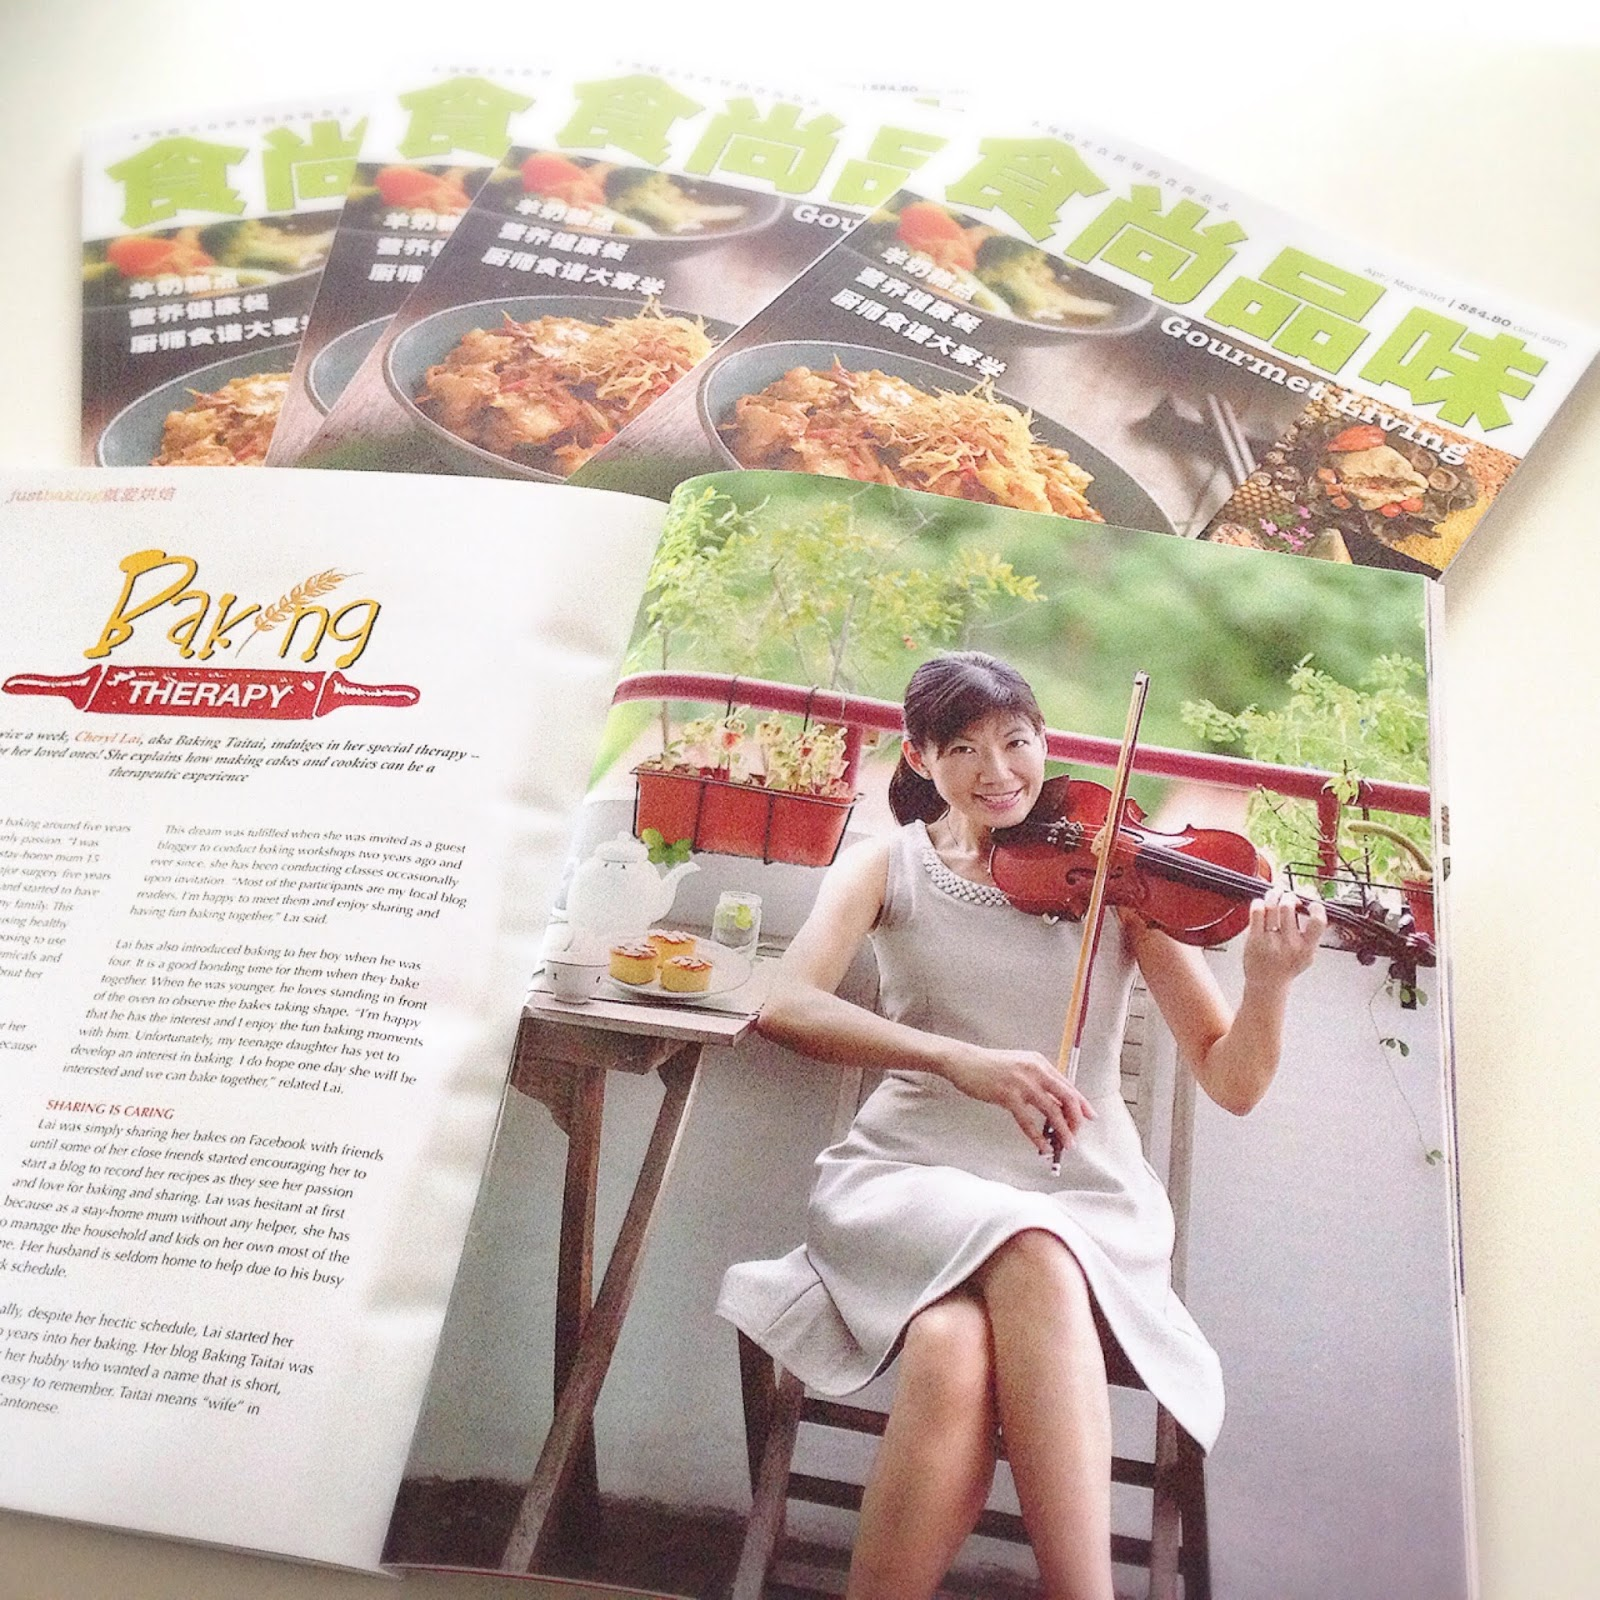 Baking taitai baking taitai featured in gourmet for Country living sweepstakes april 2016